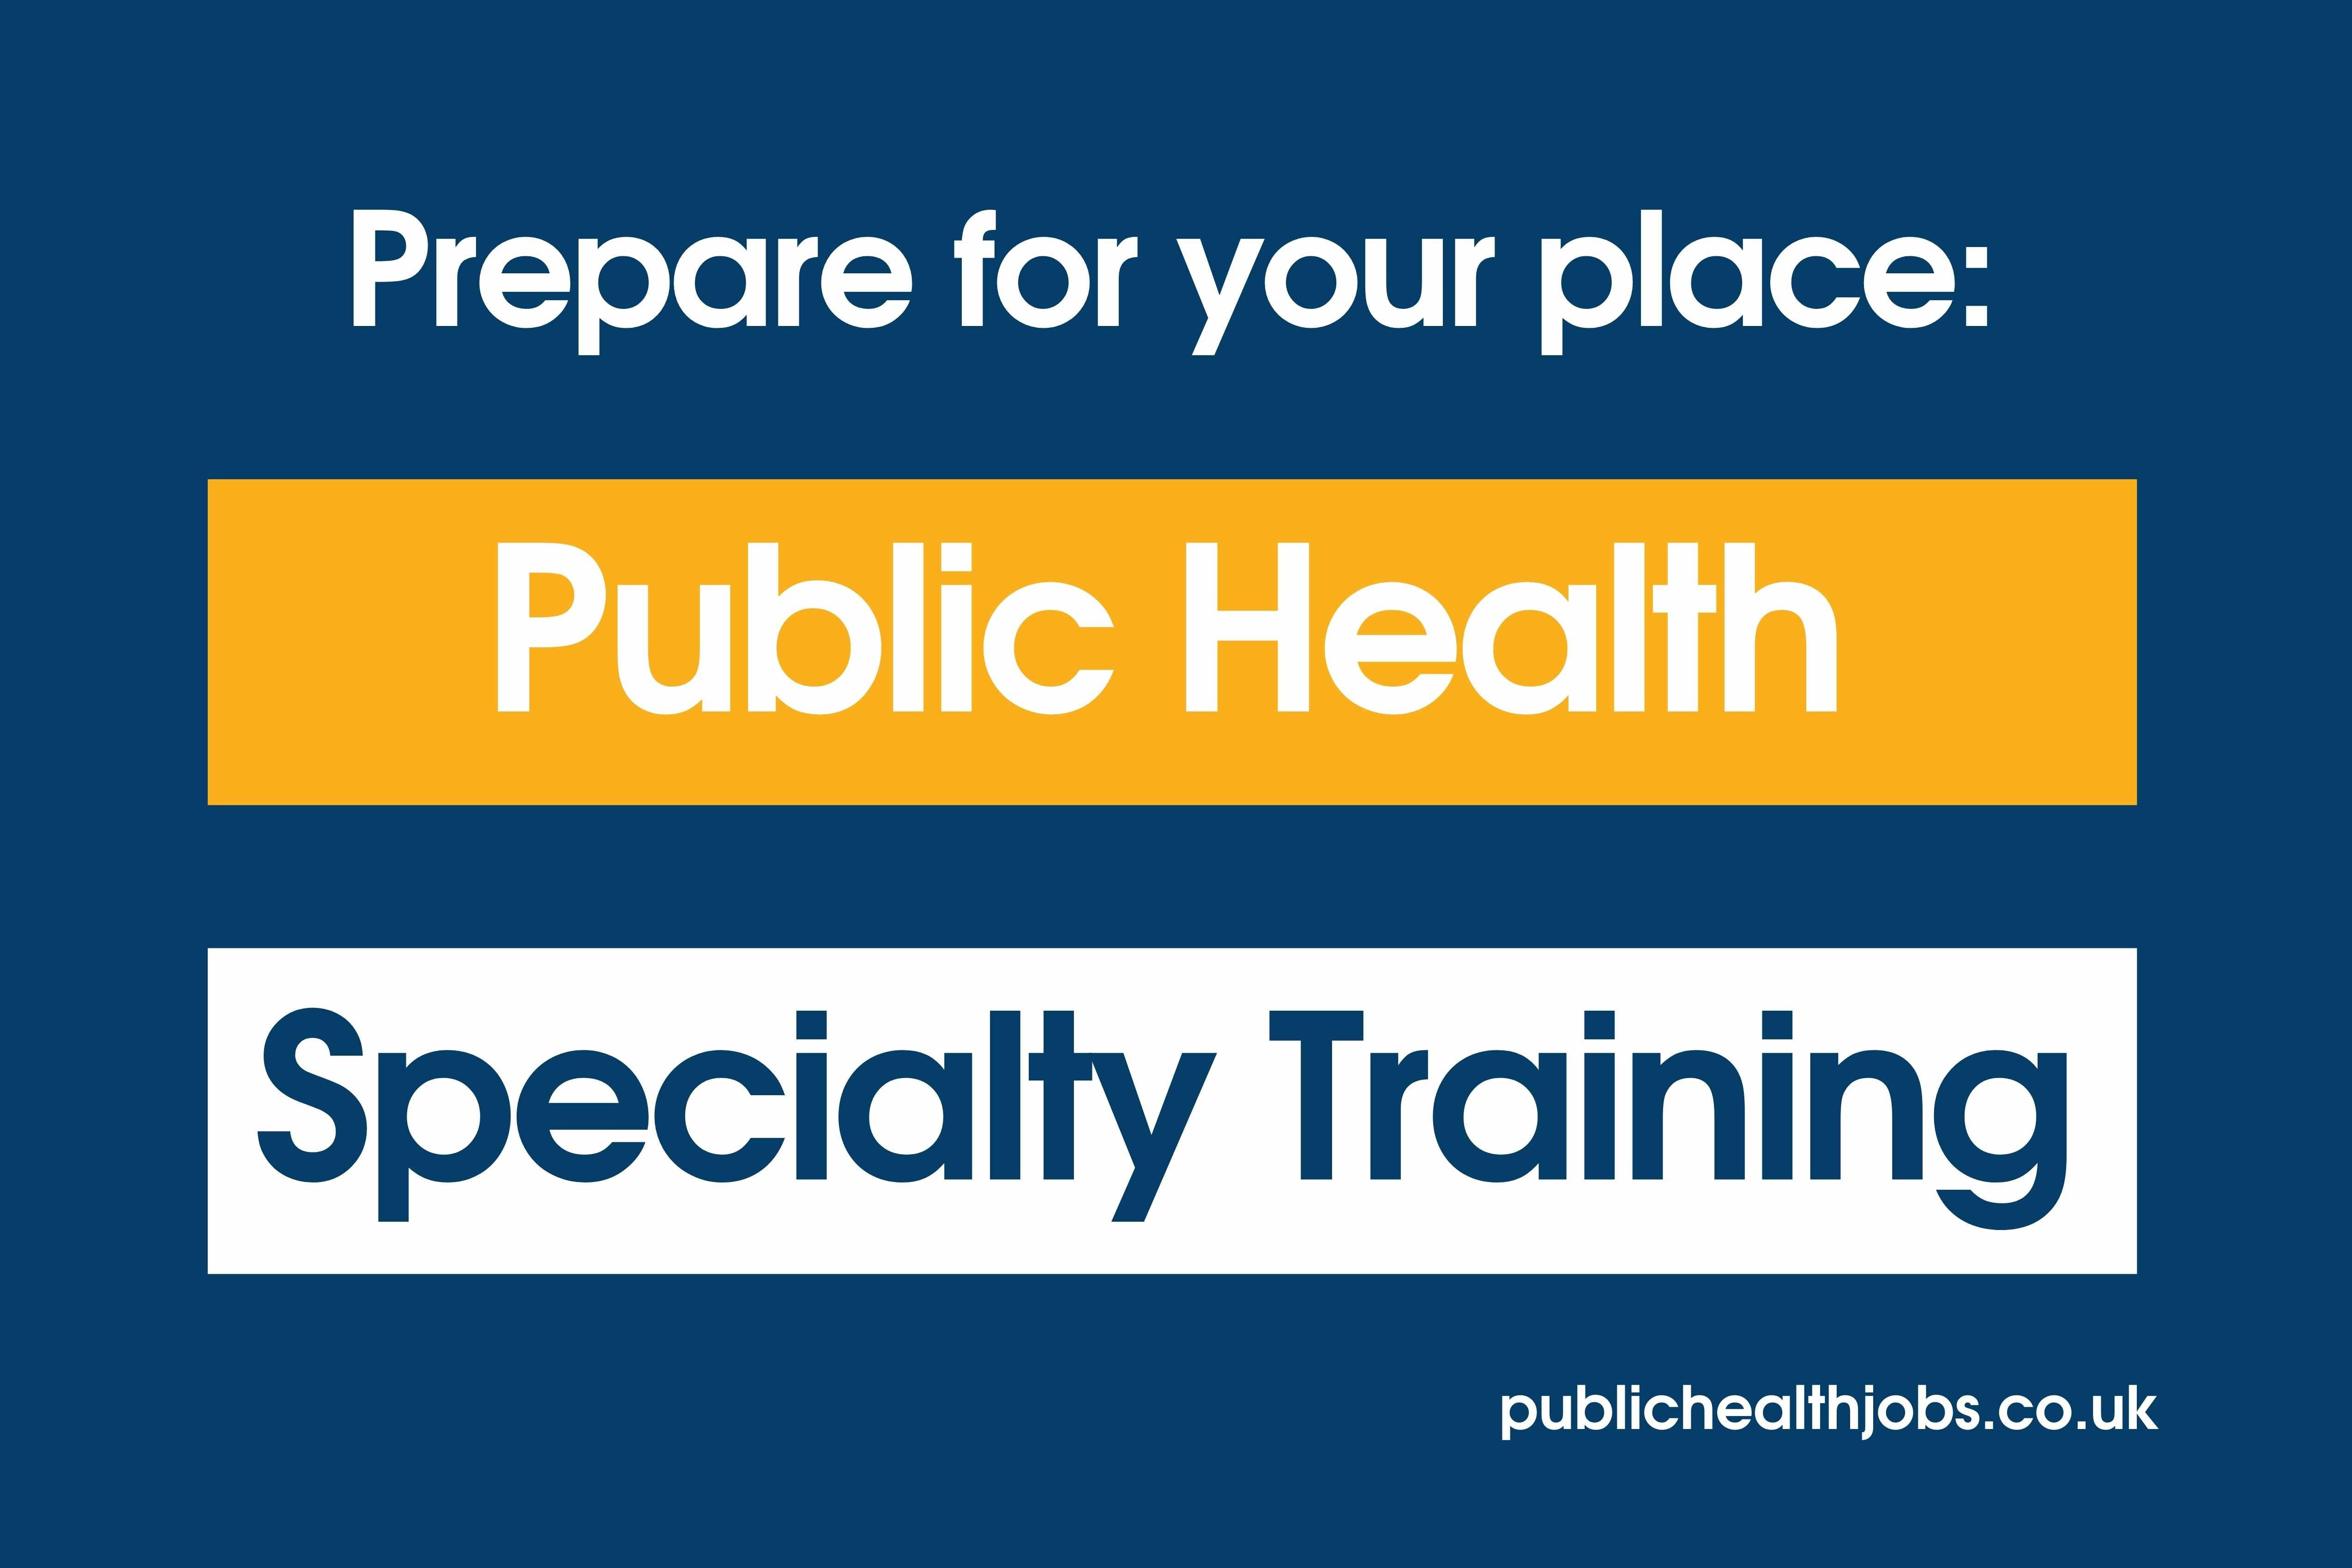 Prepare for your place: Public Health Specialty Training Scheme